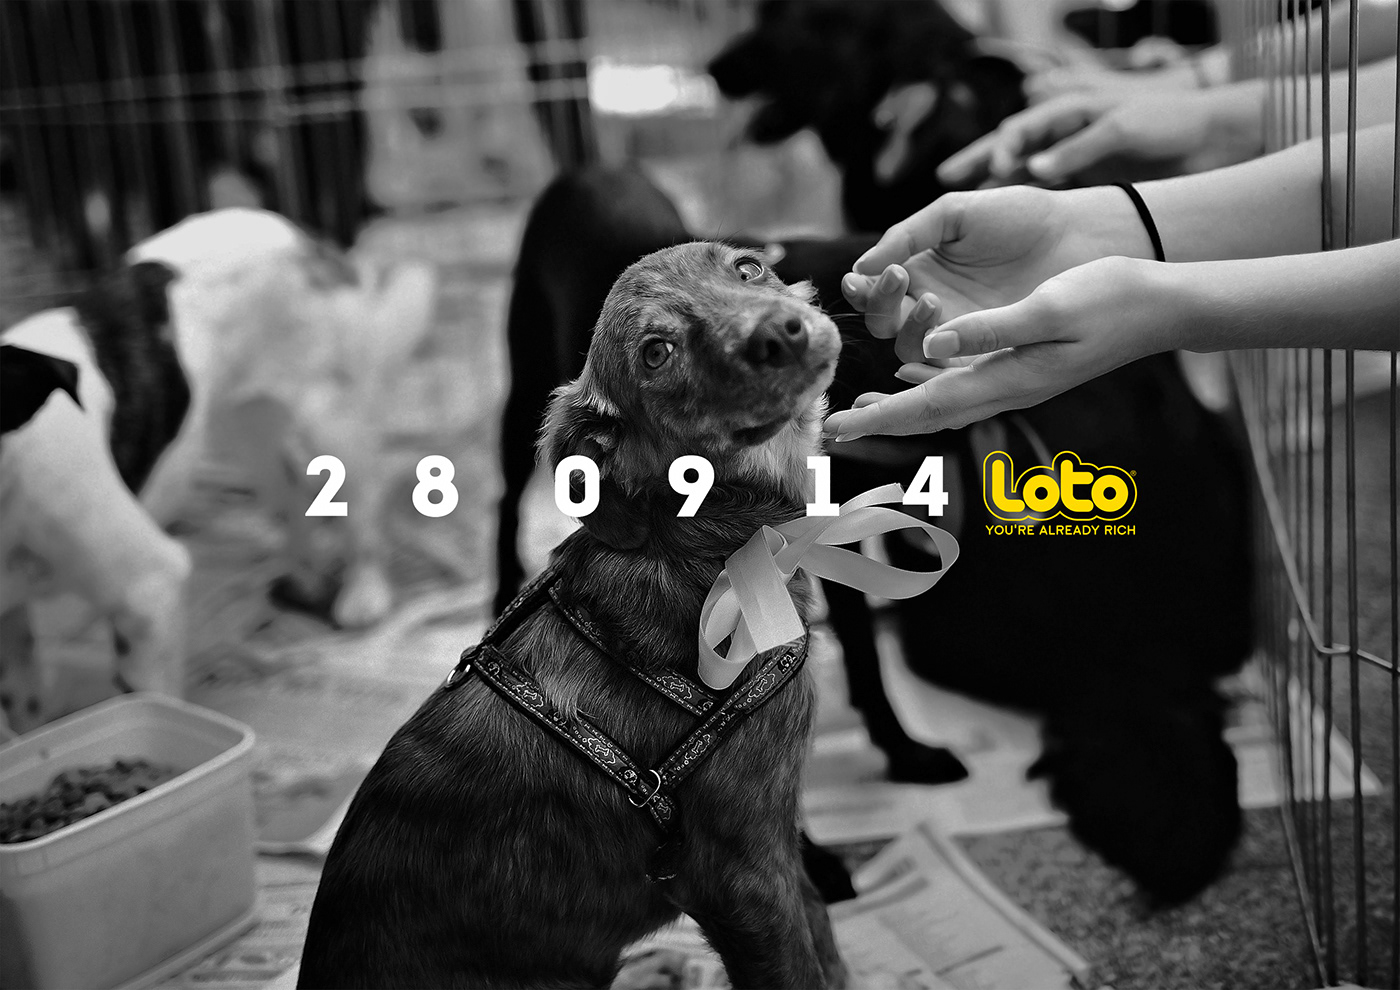 loto gambling chile Photography  loteria Lottery VML Lotto Cannes lions Yr